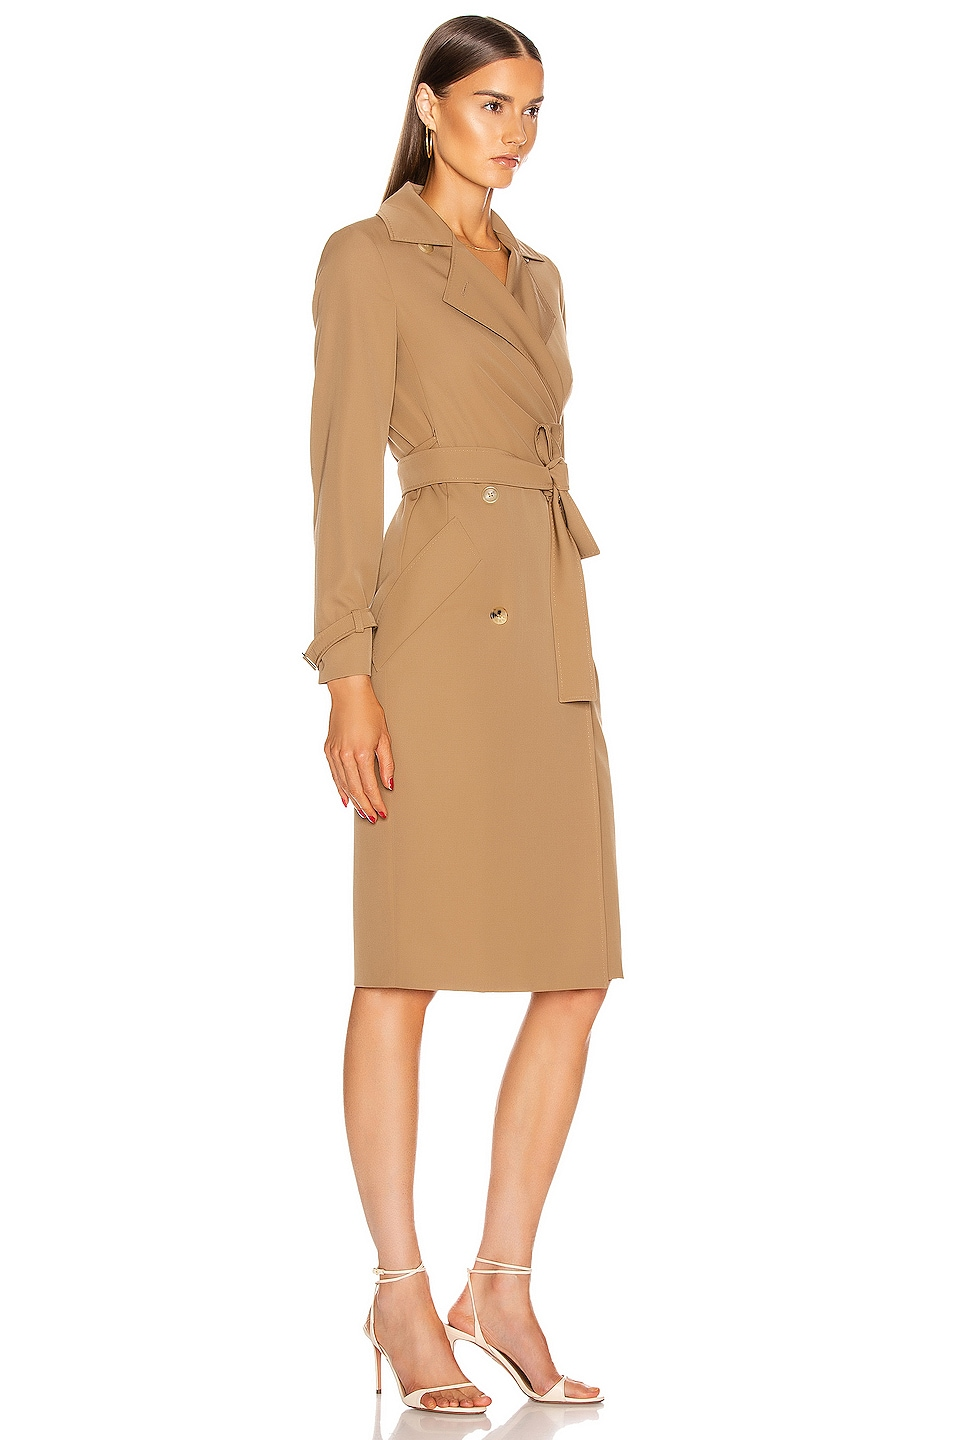 Image 2 of Max Mara Lucia Dress in Camel